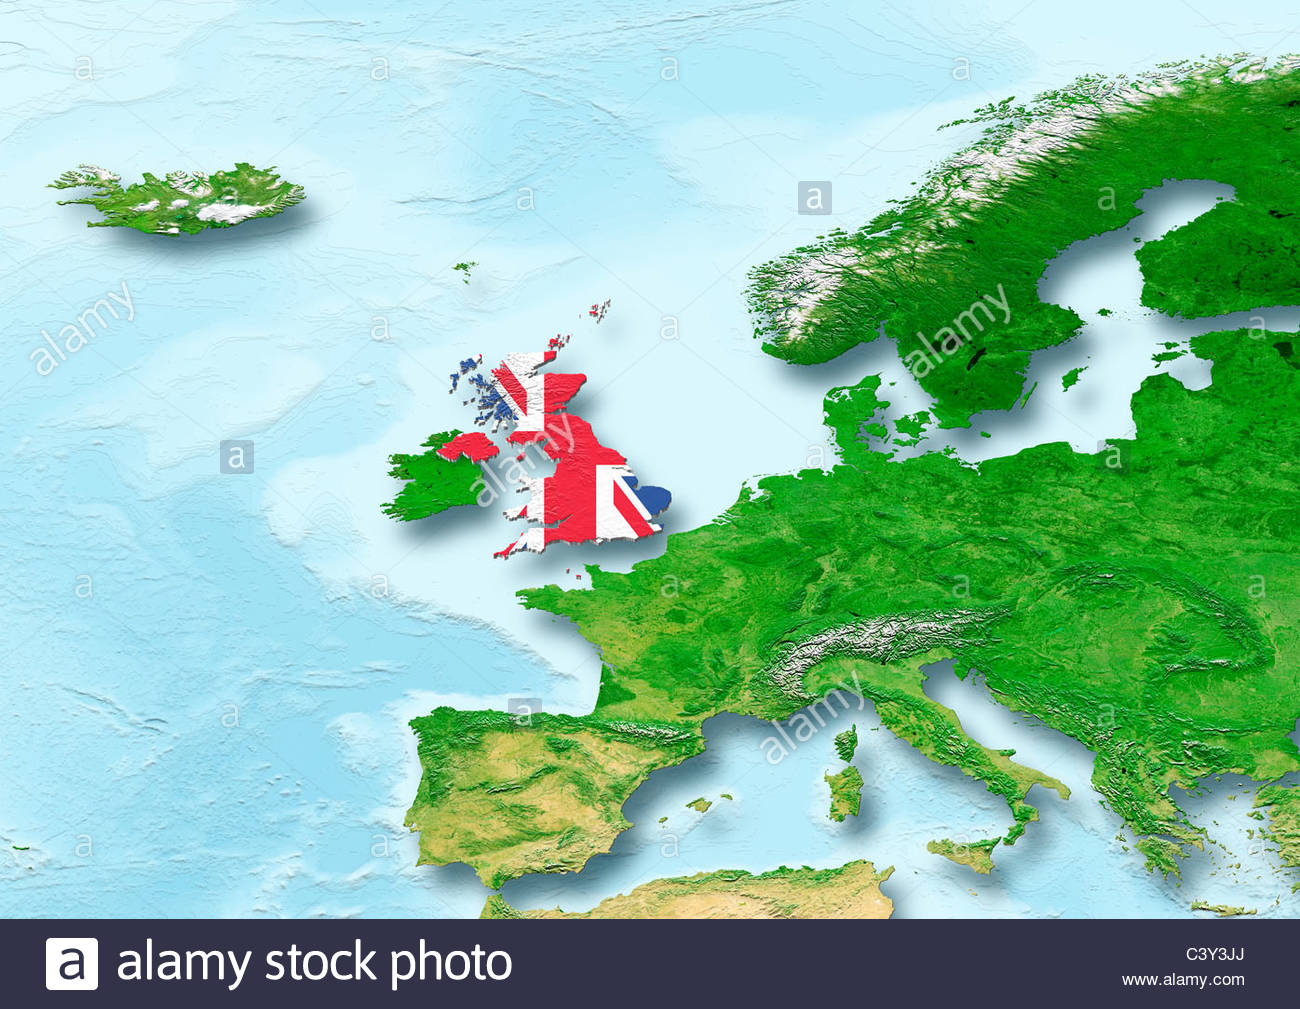 United Kingdom, U.K. Britain, flag, map, Western Europe, physical - Stock Image